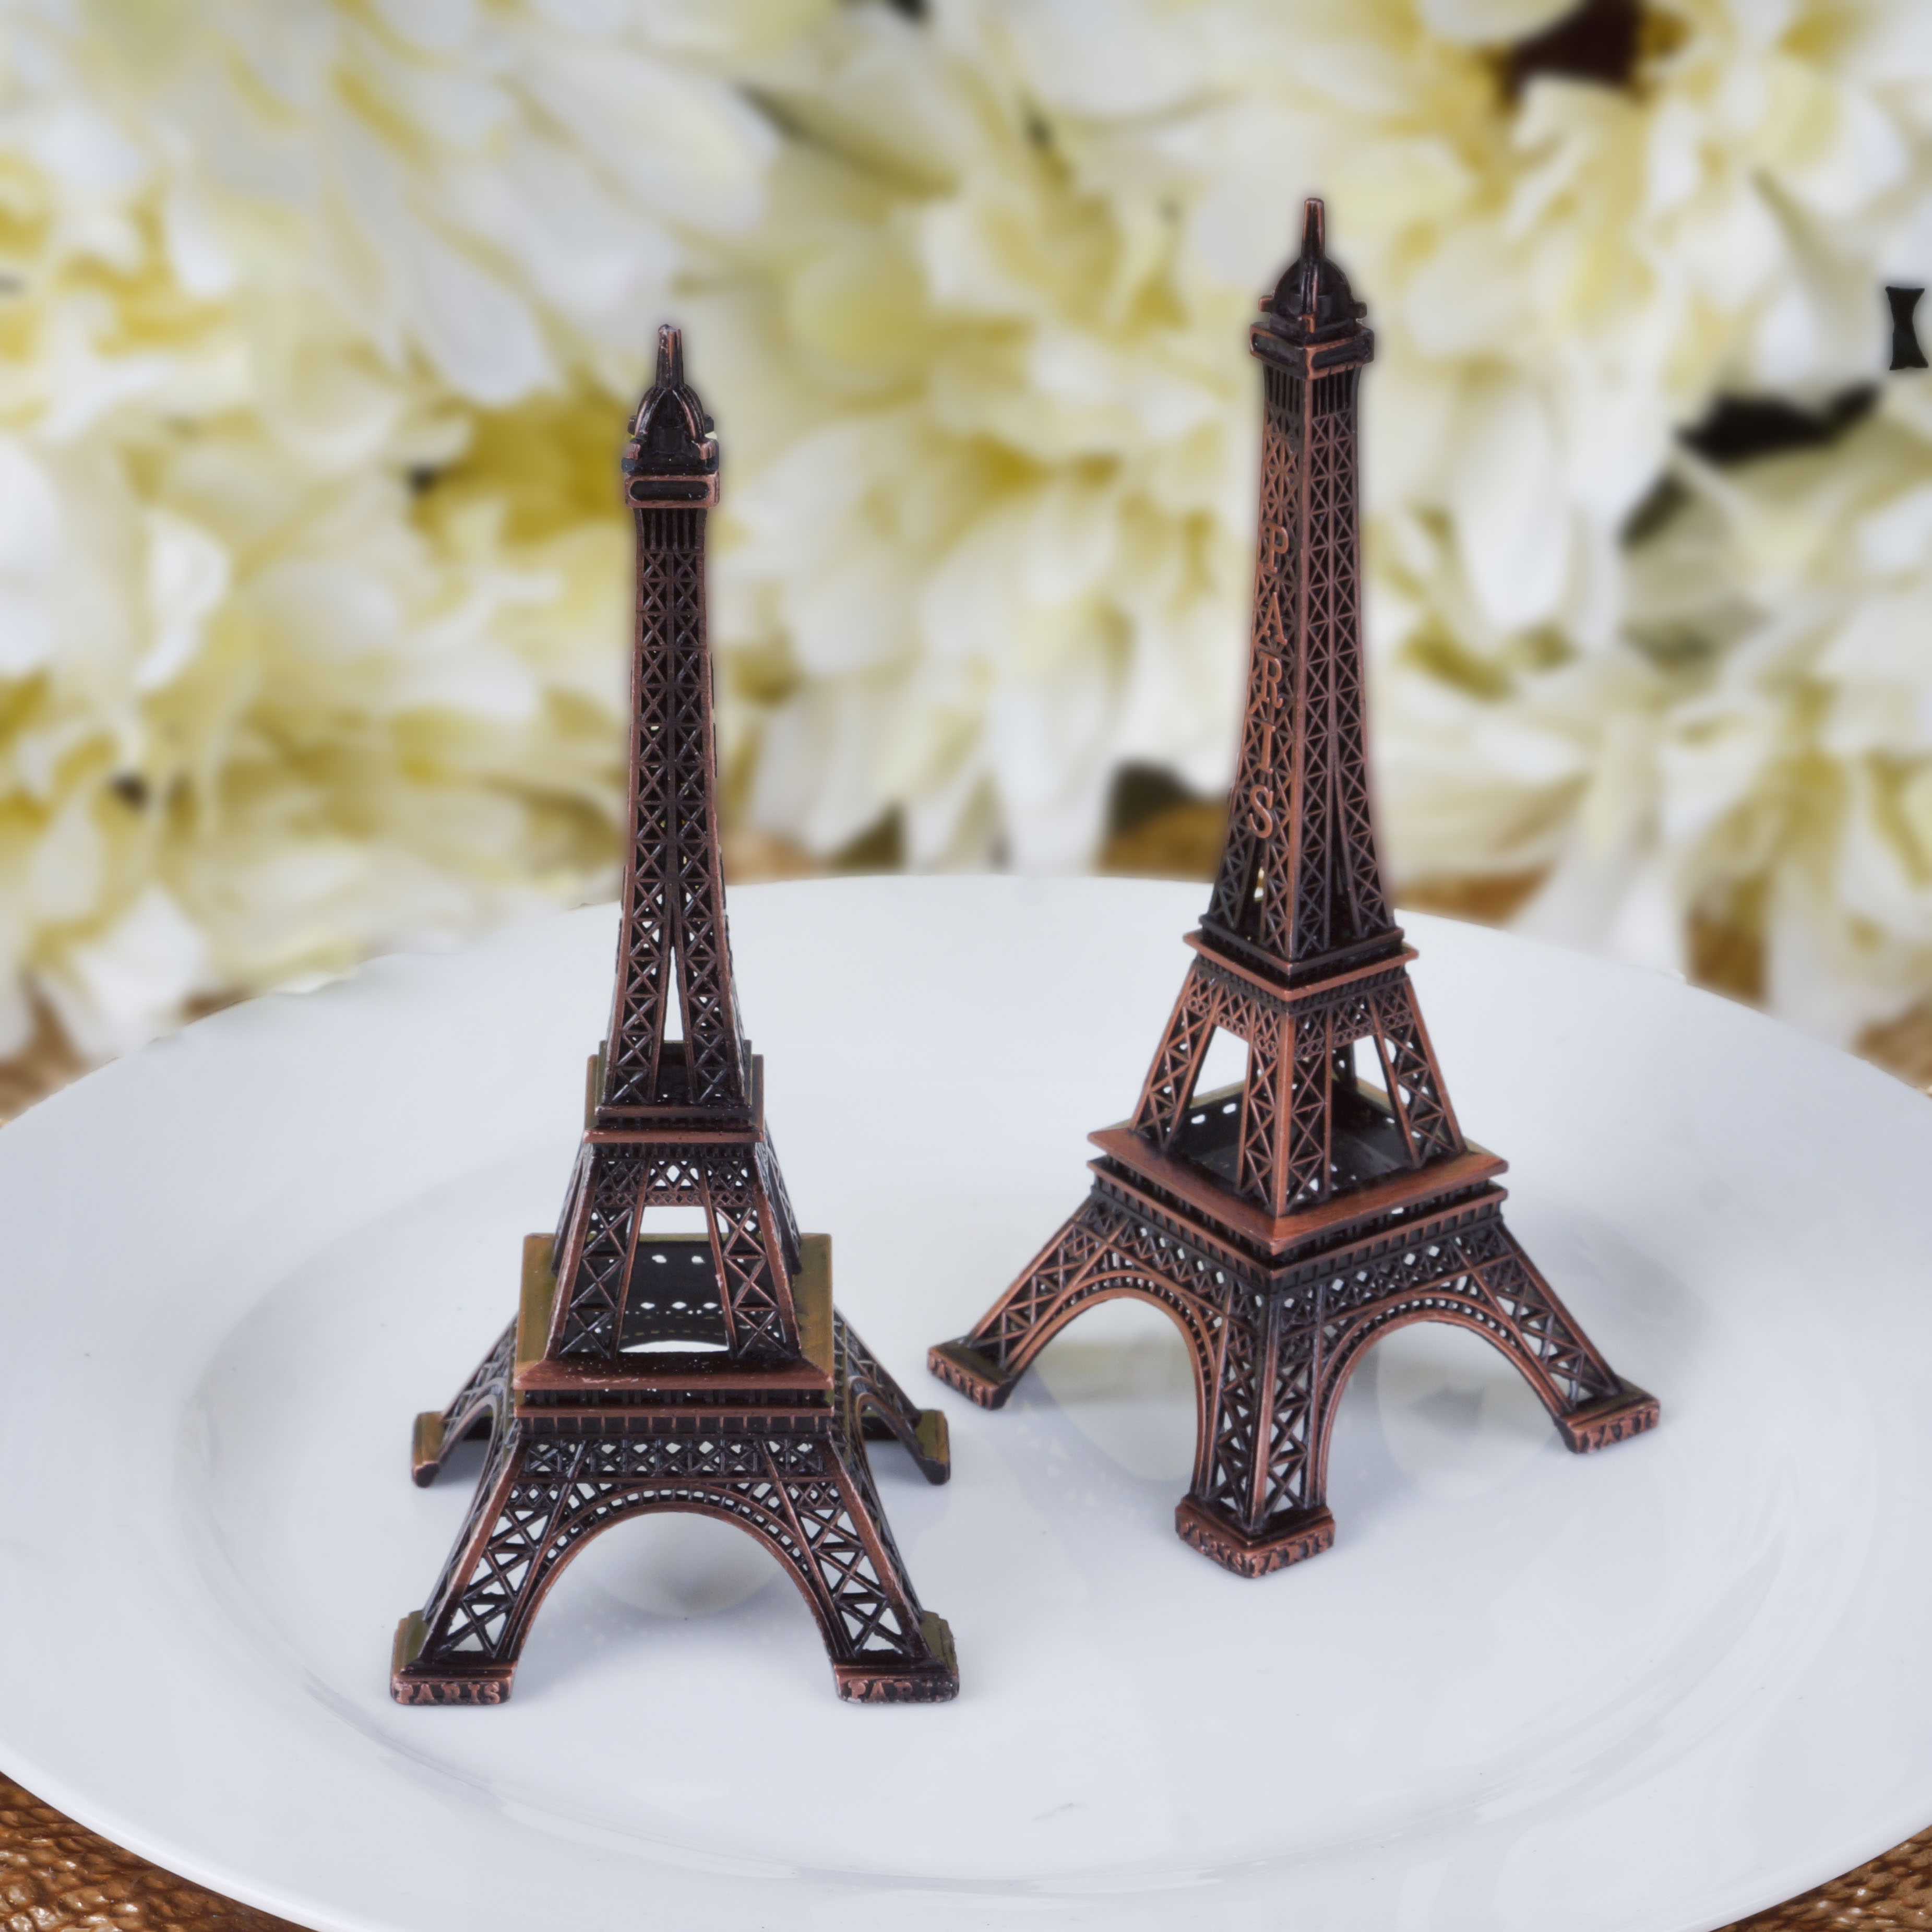 Eiffel Tower Statues for Sale | Eiffel Tower Centerpieces | Eiffel Tower Centerpieces for Quinceaneras